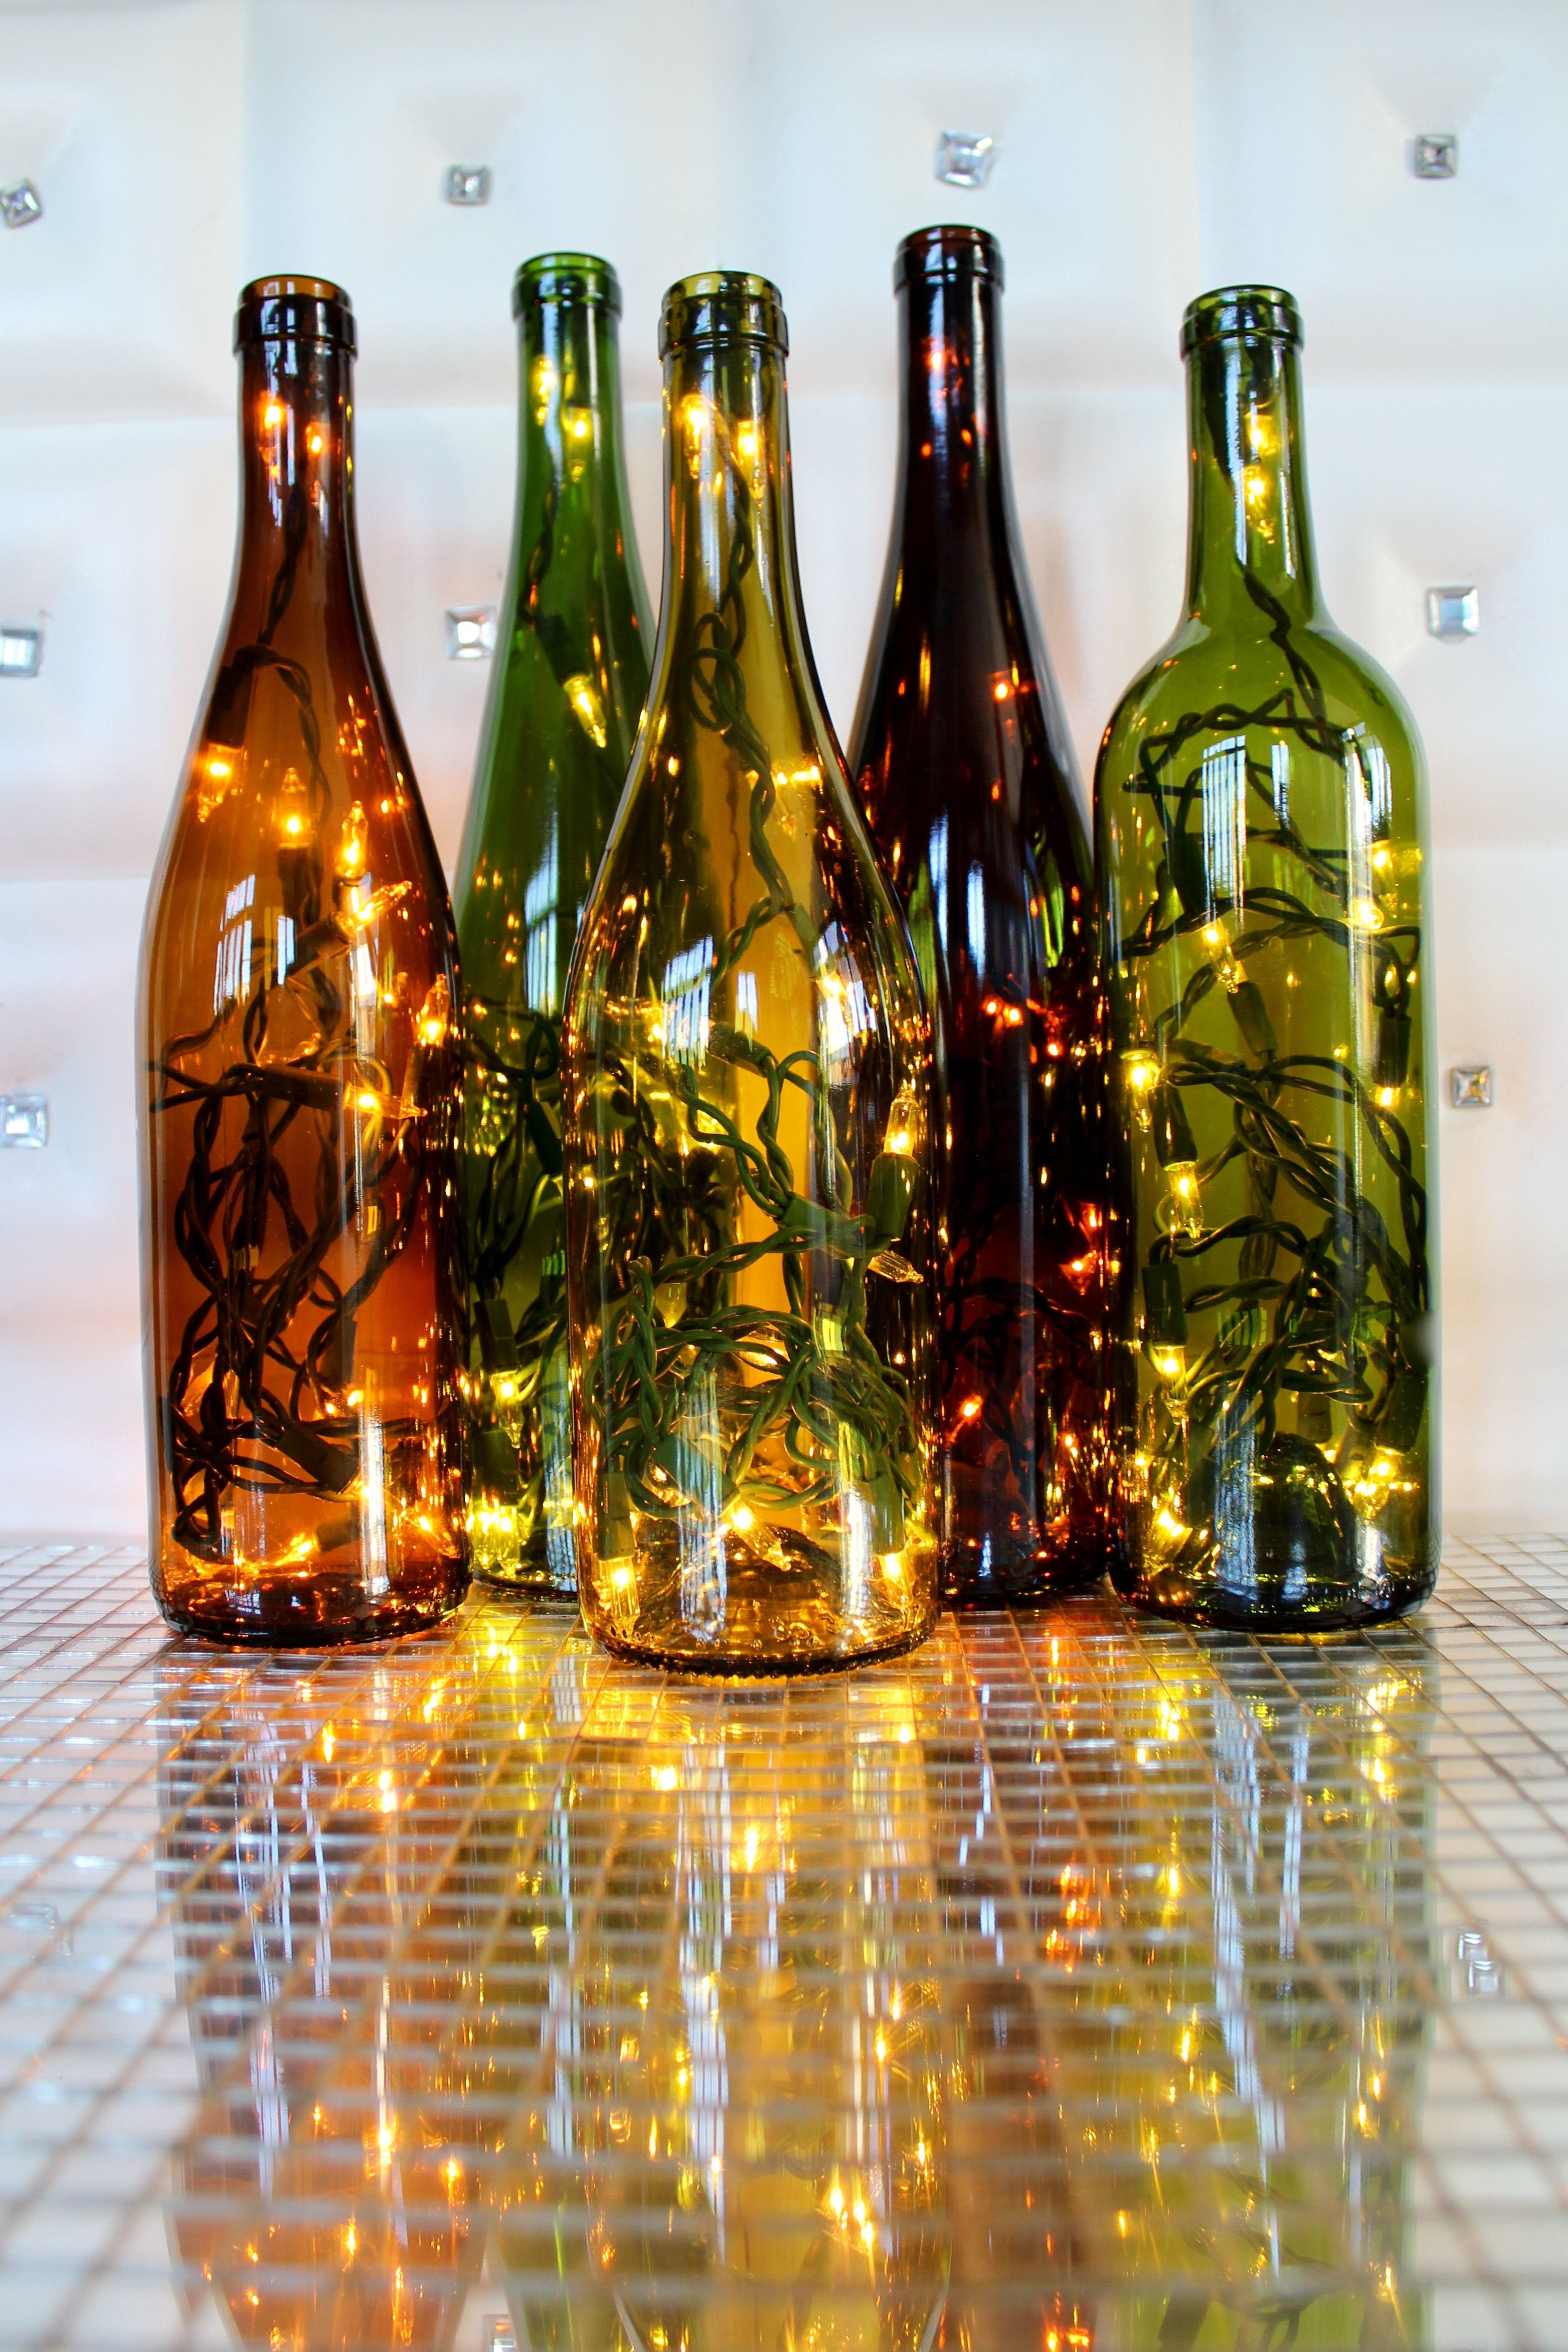 Classy Garbage lighted wine bottles make the